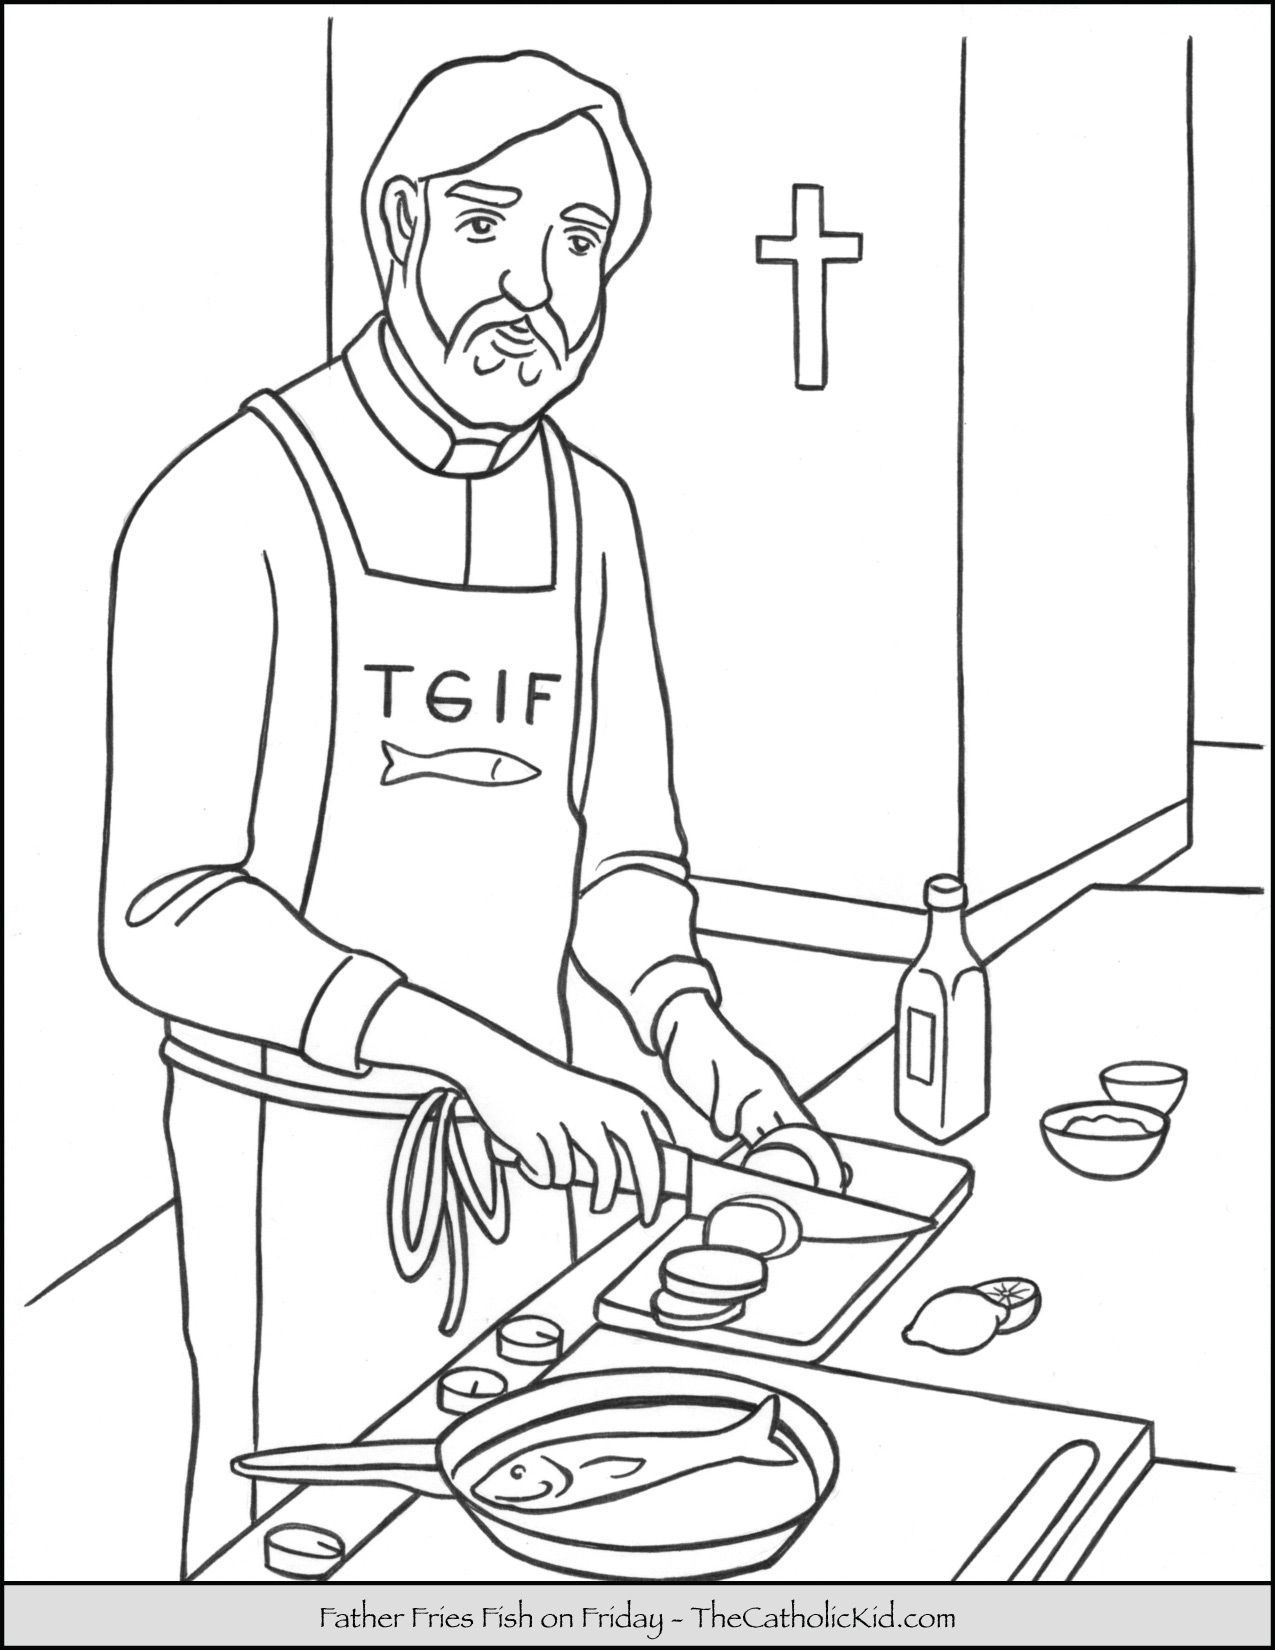 Priest Father Frying Fish Friday Coloring Page Thecatholickid